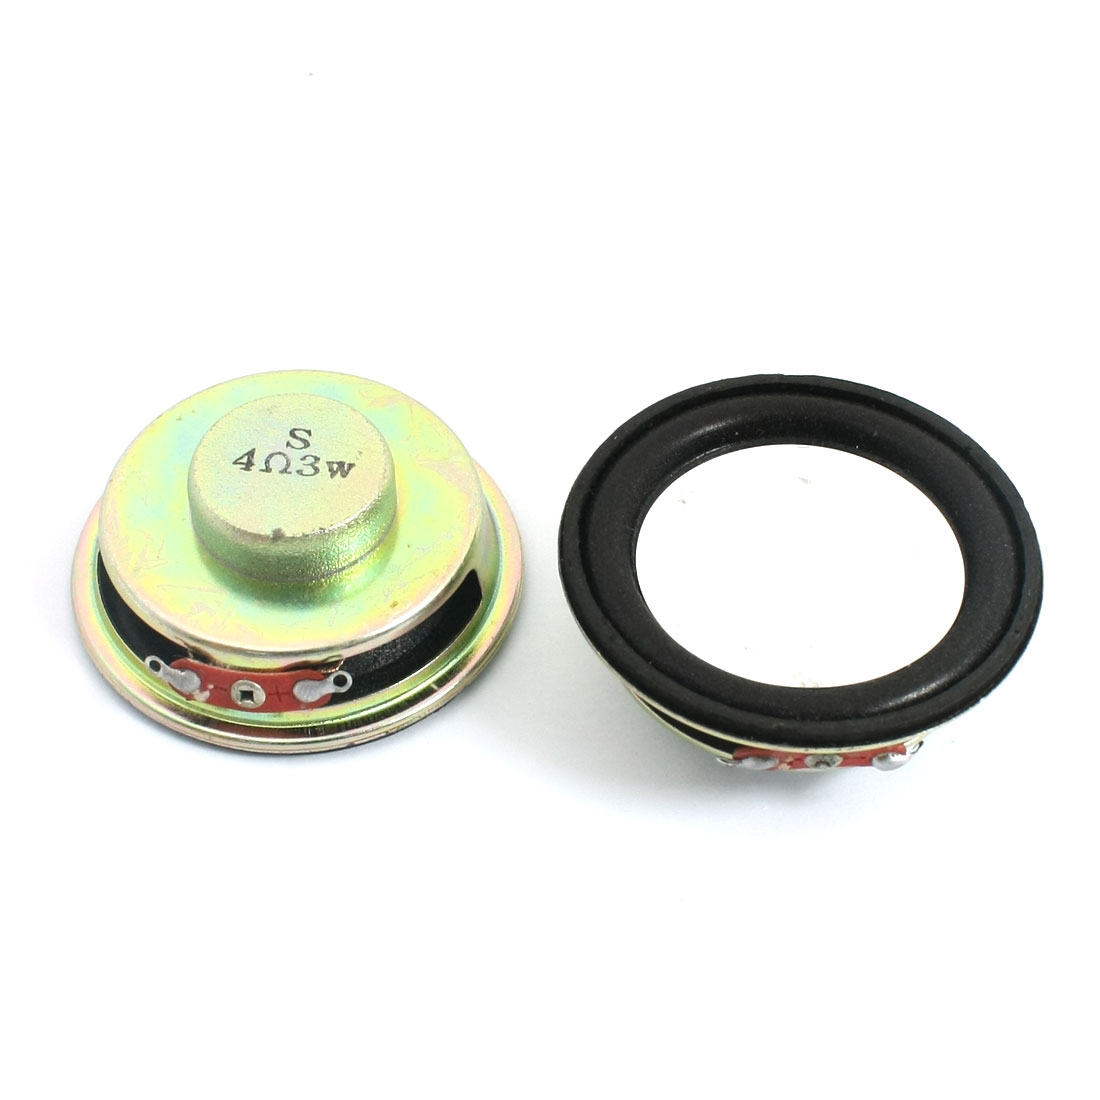 2 Pcs 3W 4 Ohm 50mm Dia Round Metal Shell Internal Magnetic Type LCD Ad Player Audio Speaker Amplifier Loudspeaker